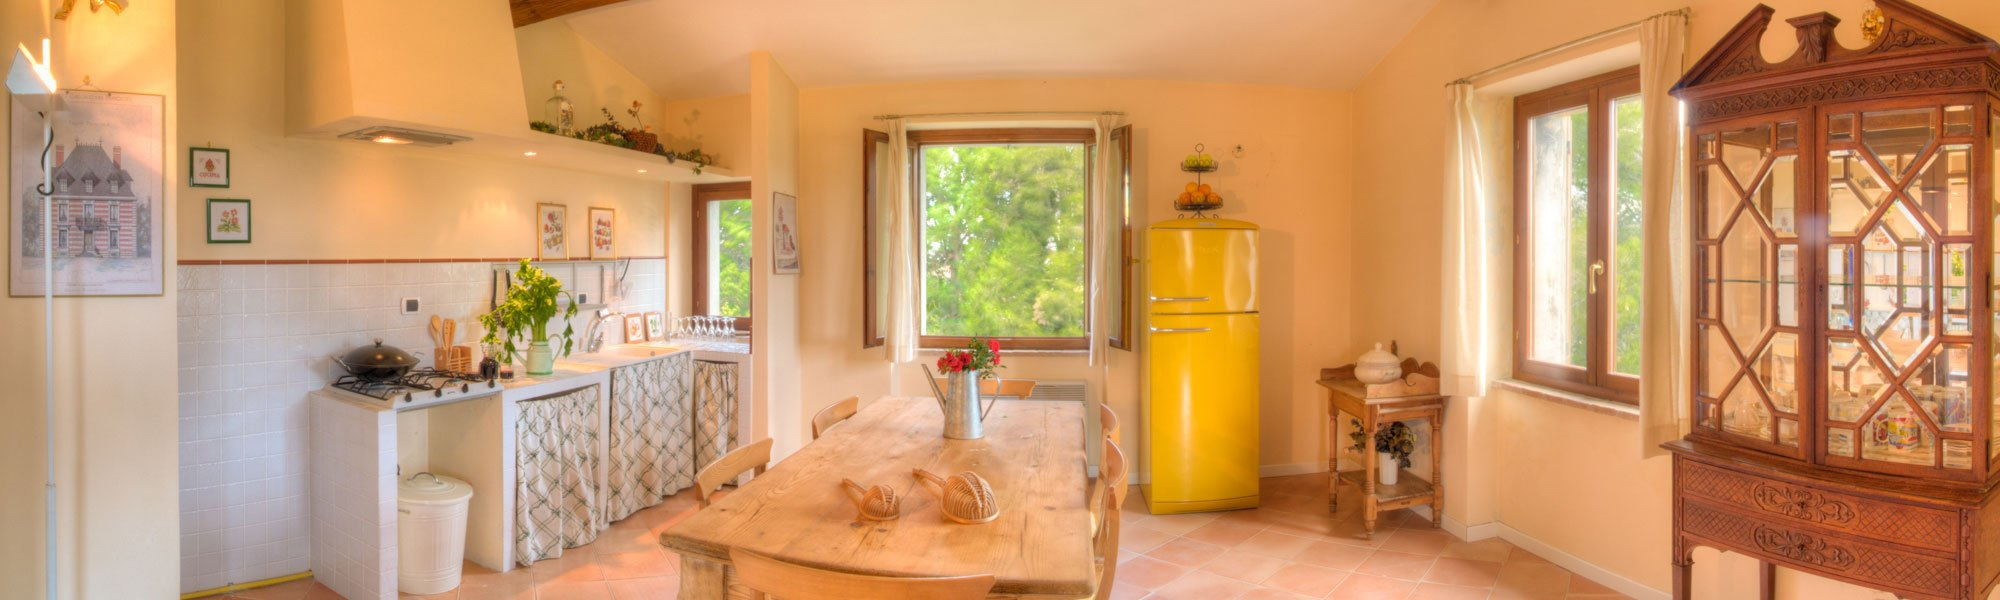 Villa Colibrì in Umbria - Kitchen